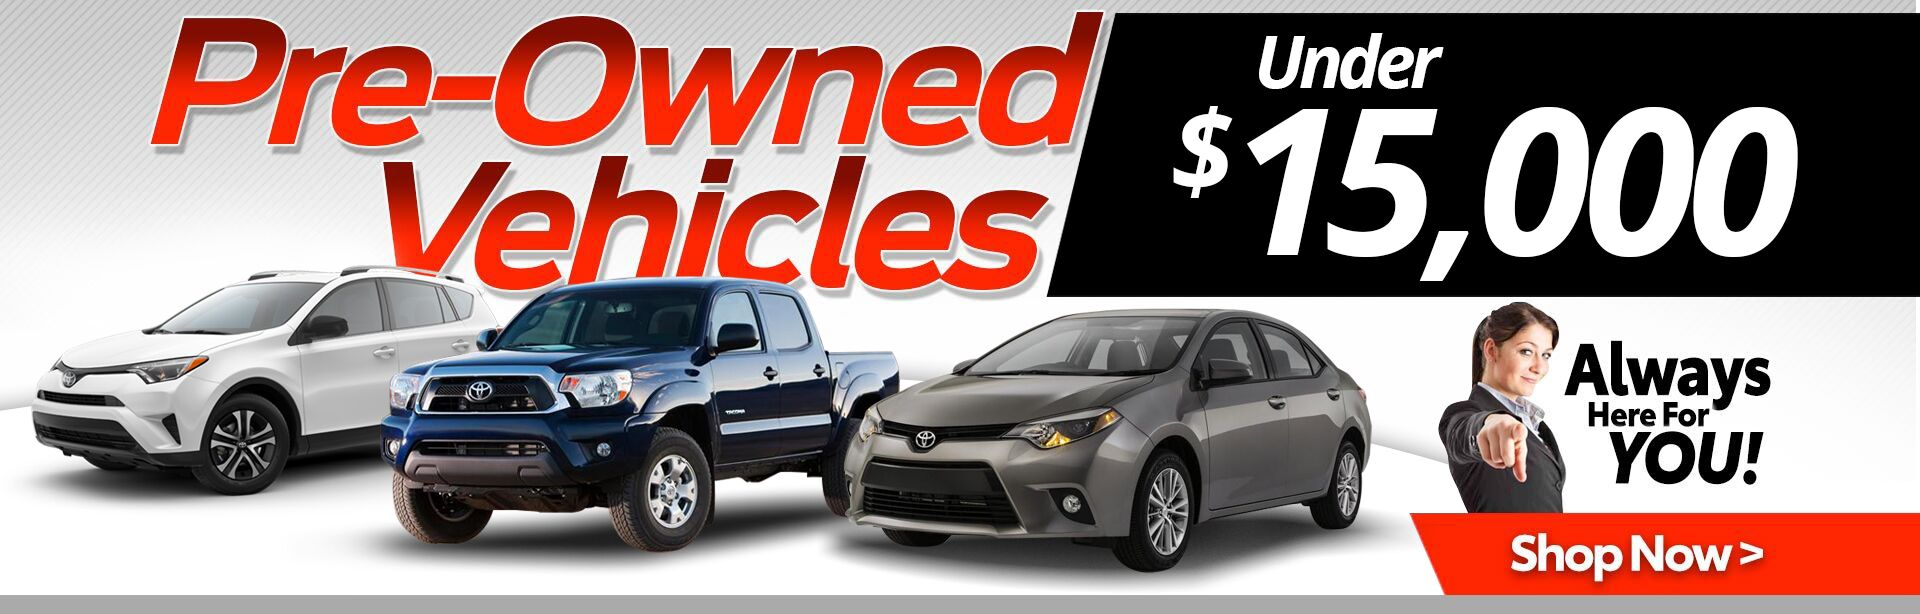 Pre-owned Vehicle Under $15,000